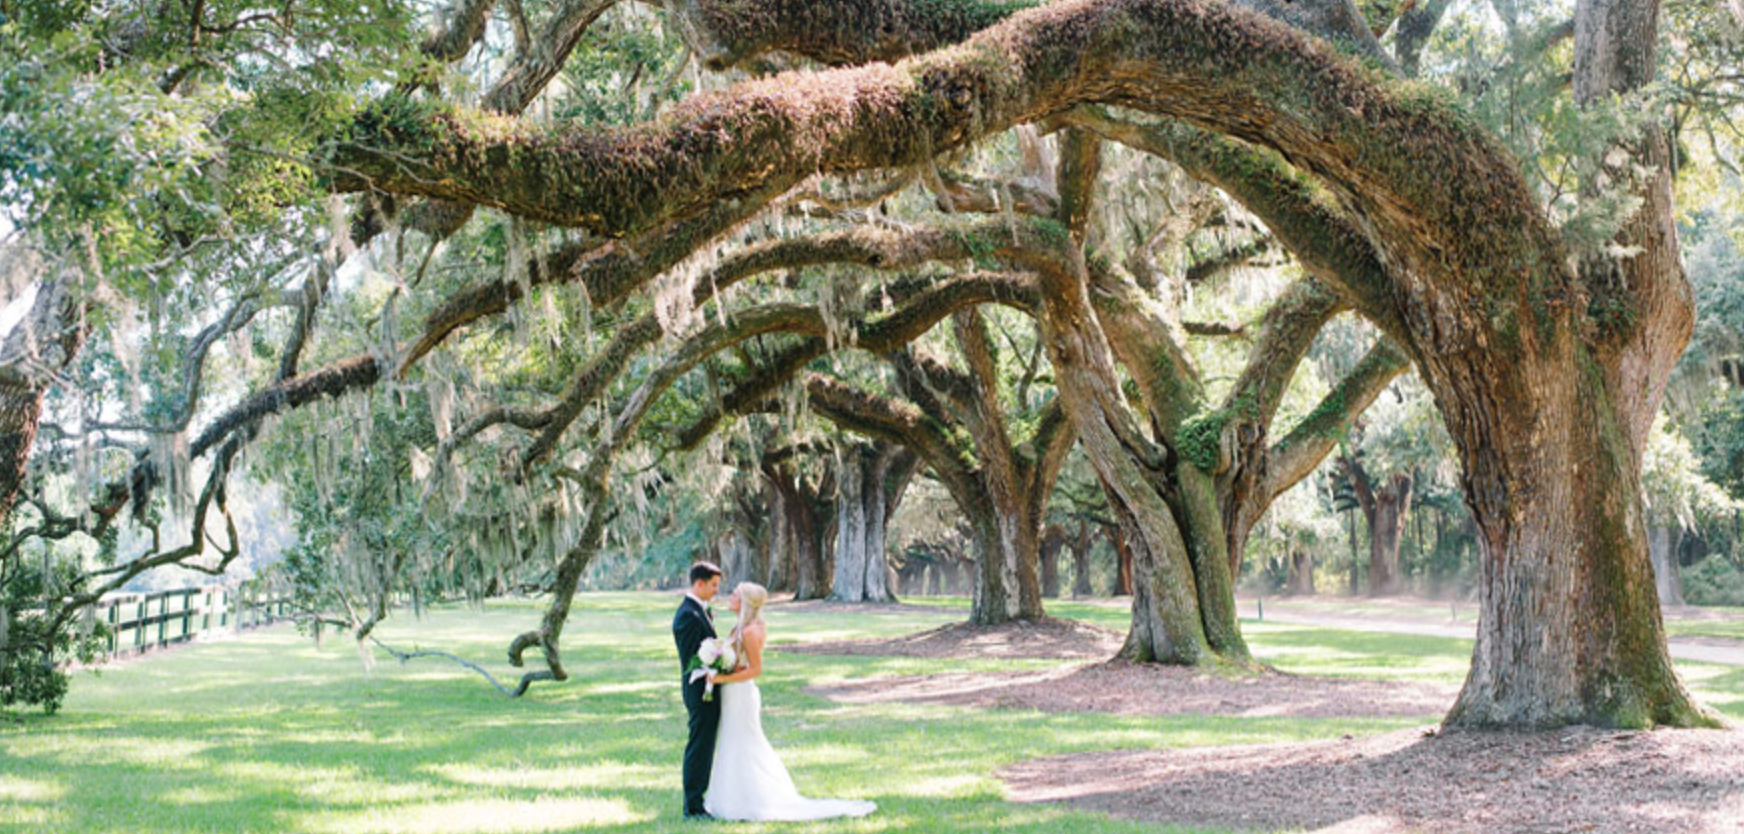 A photo from a wedding at Boone Hall Plantation and Gardens in South Carolina.